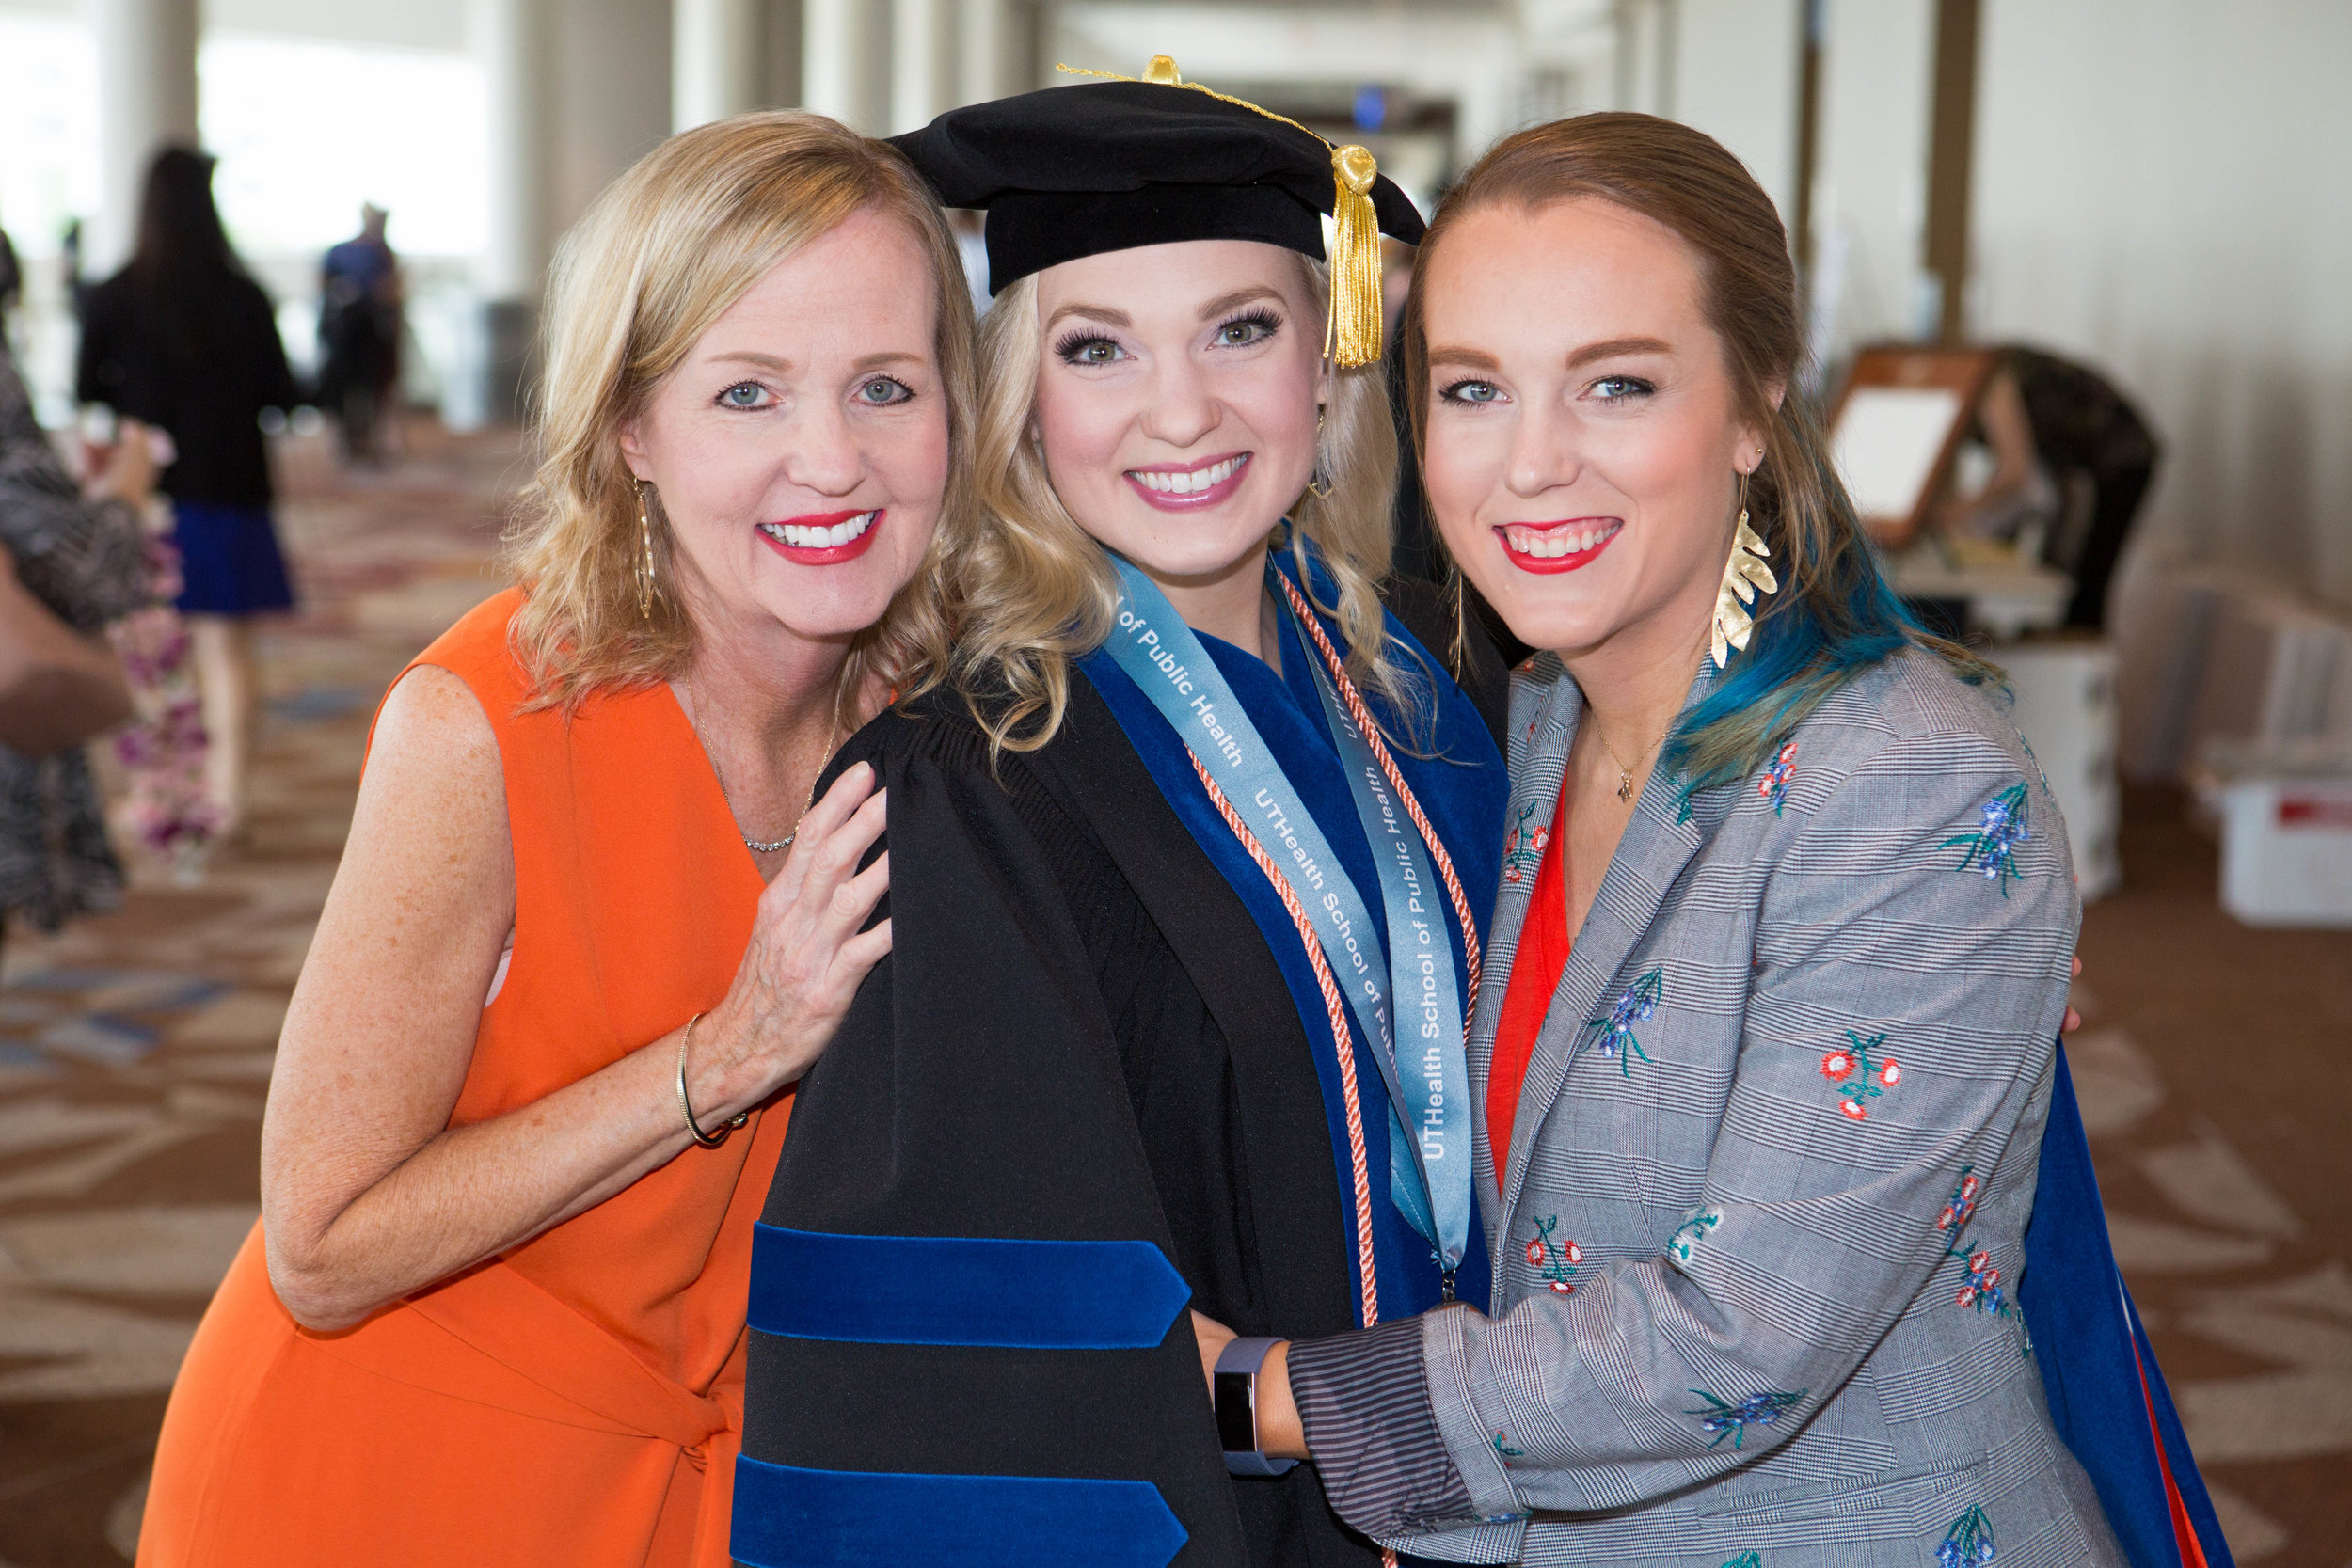 During the May 2019 commencement at The University of Texas, Hadley was congratulated by her mother, Dr. Candy Stevens Smith, and her sister, Savannah Stevens Jarrett.